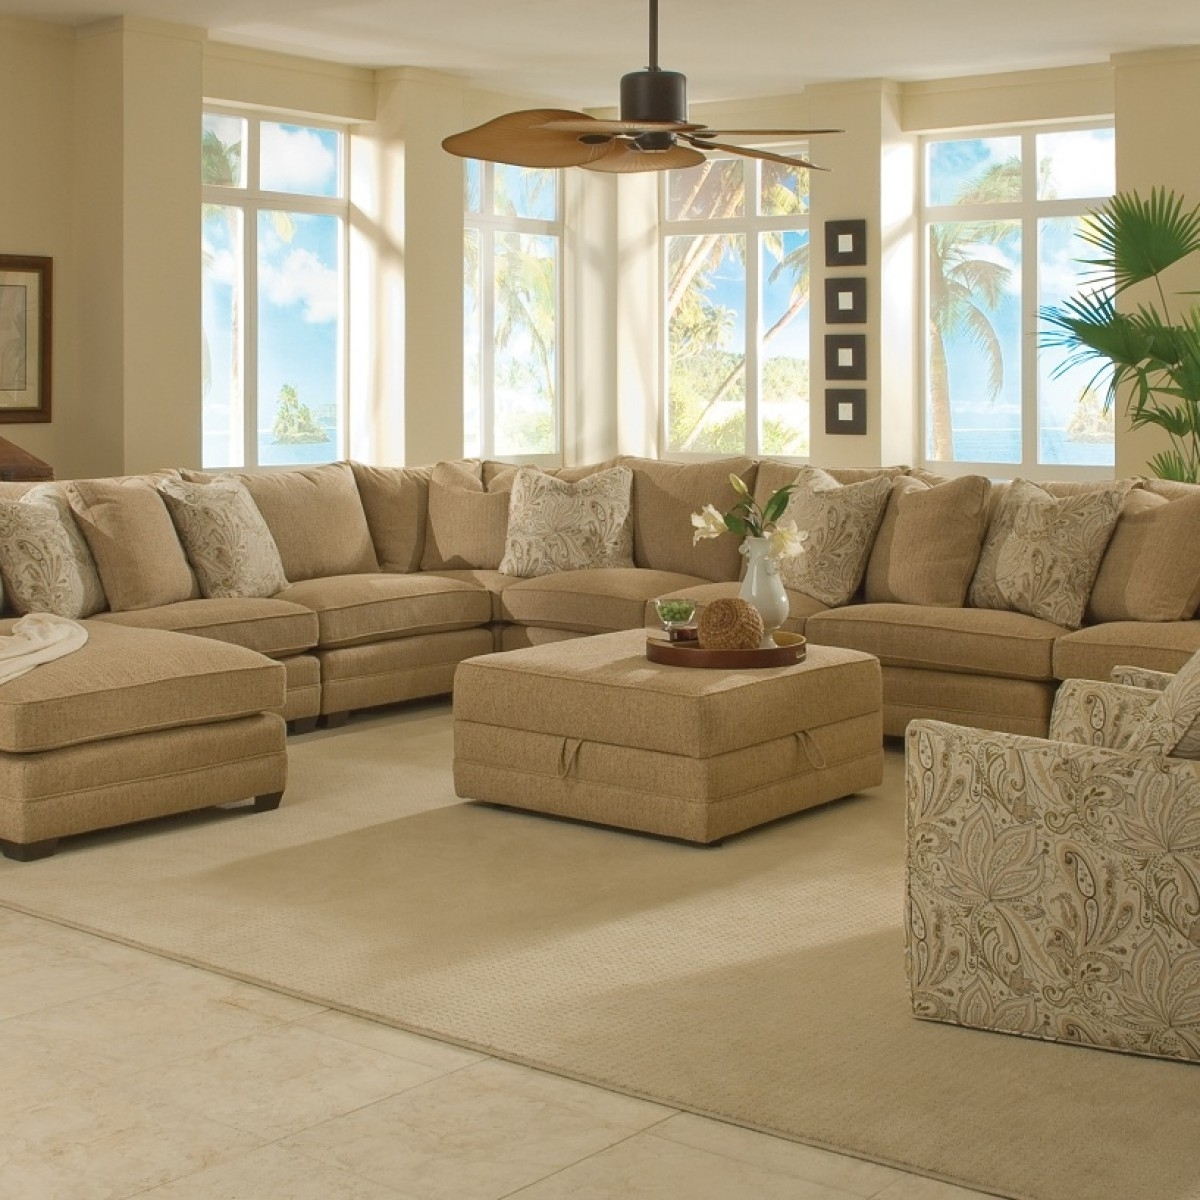 Popular Factors To Consider Before Buying An Extra Large Sectional Sofa Regarding Sectional Couches With Large Ottoman (View 11 of 20)